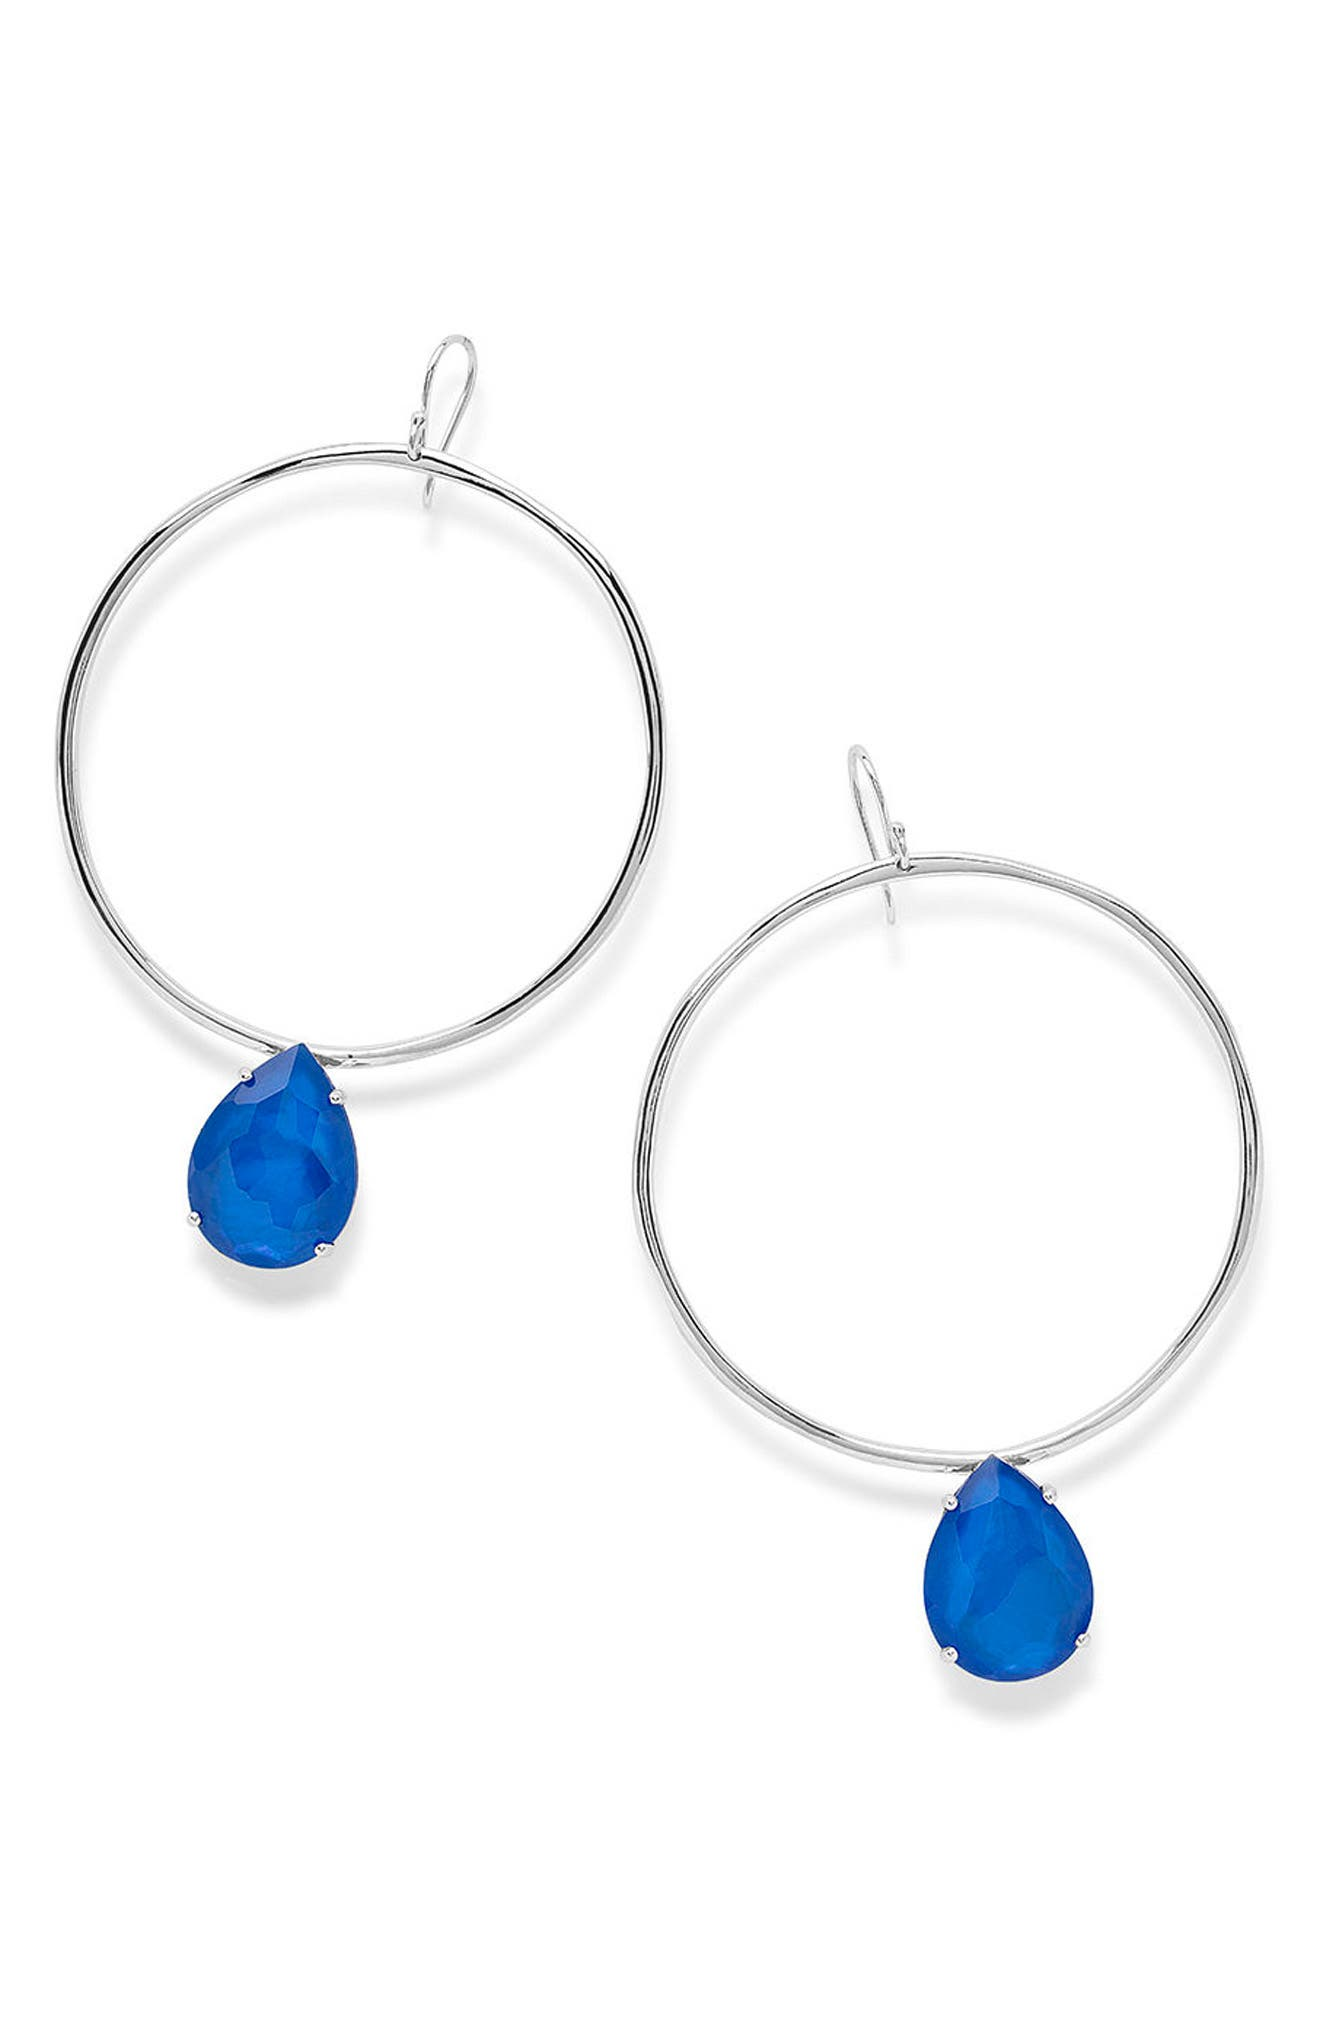 Ippolita Wonderland Large Frontal Hoop Earrings